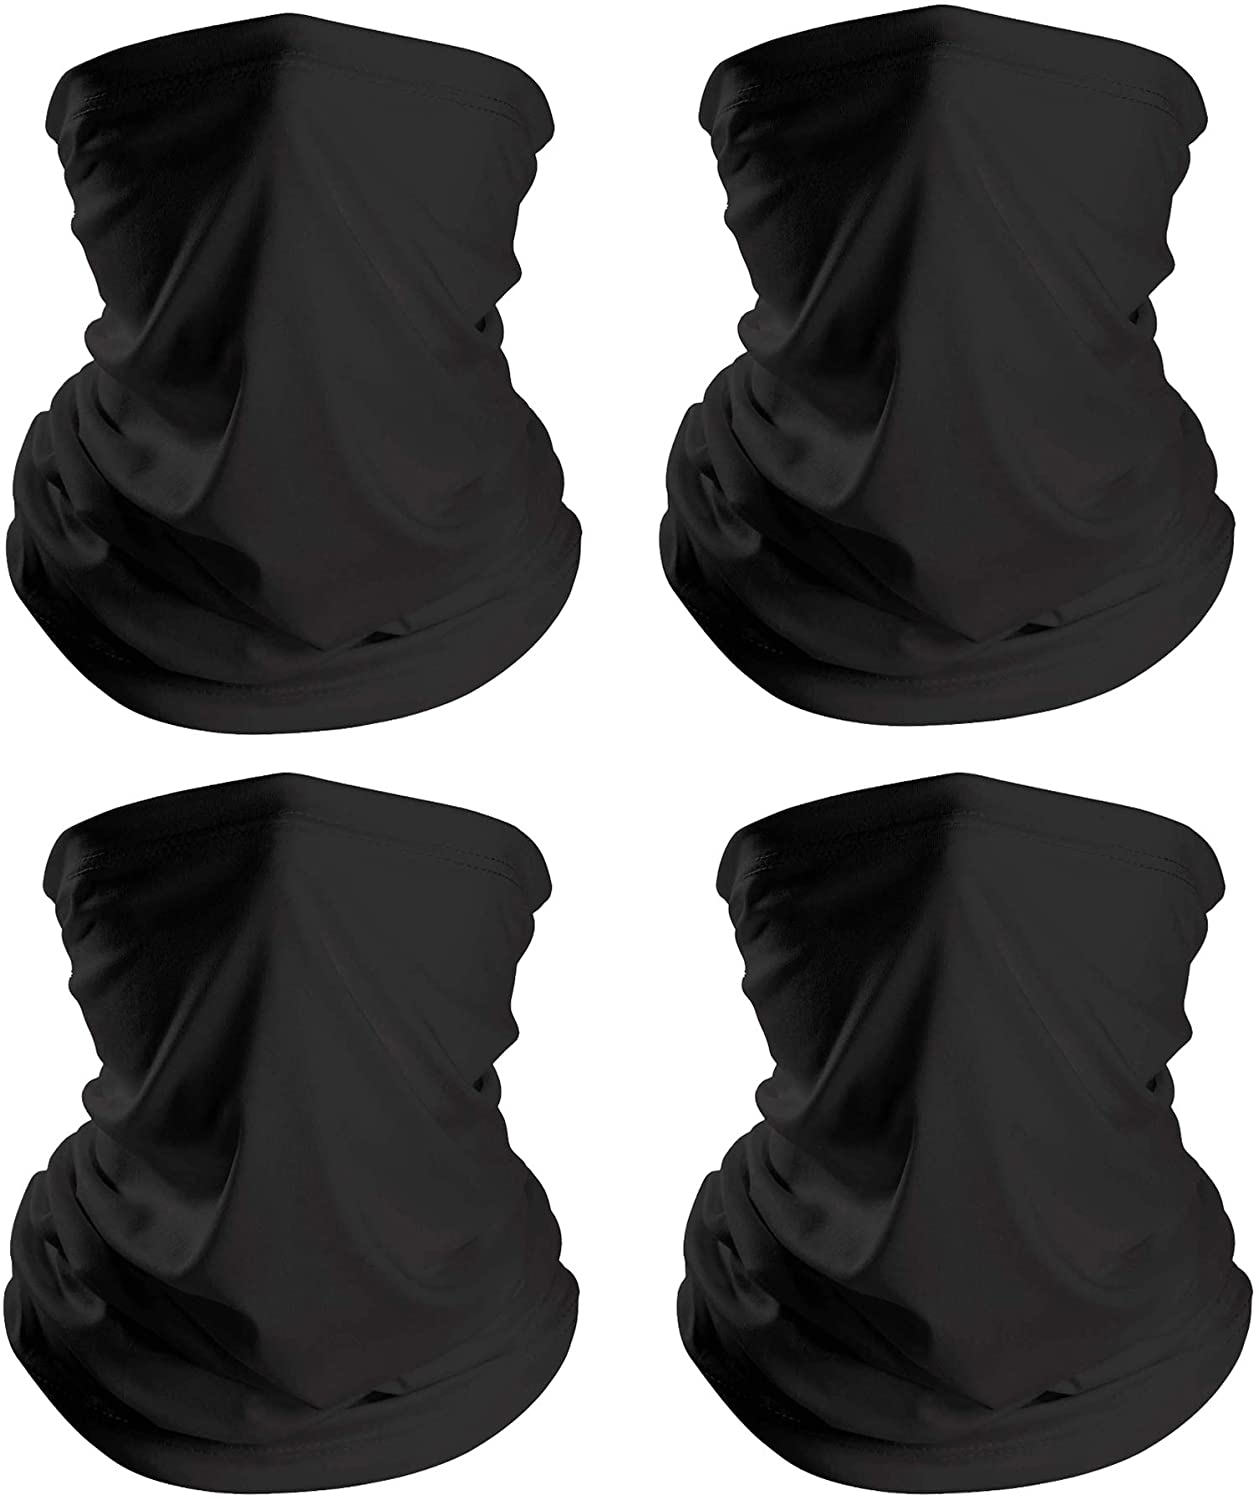 Guely Ray Cooling Neck Gaiter Face Mask Scarf Bandana Headwear for Men Women